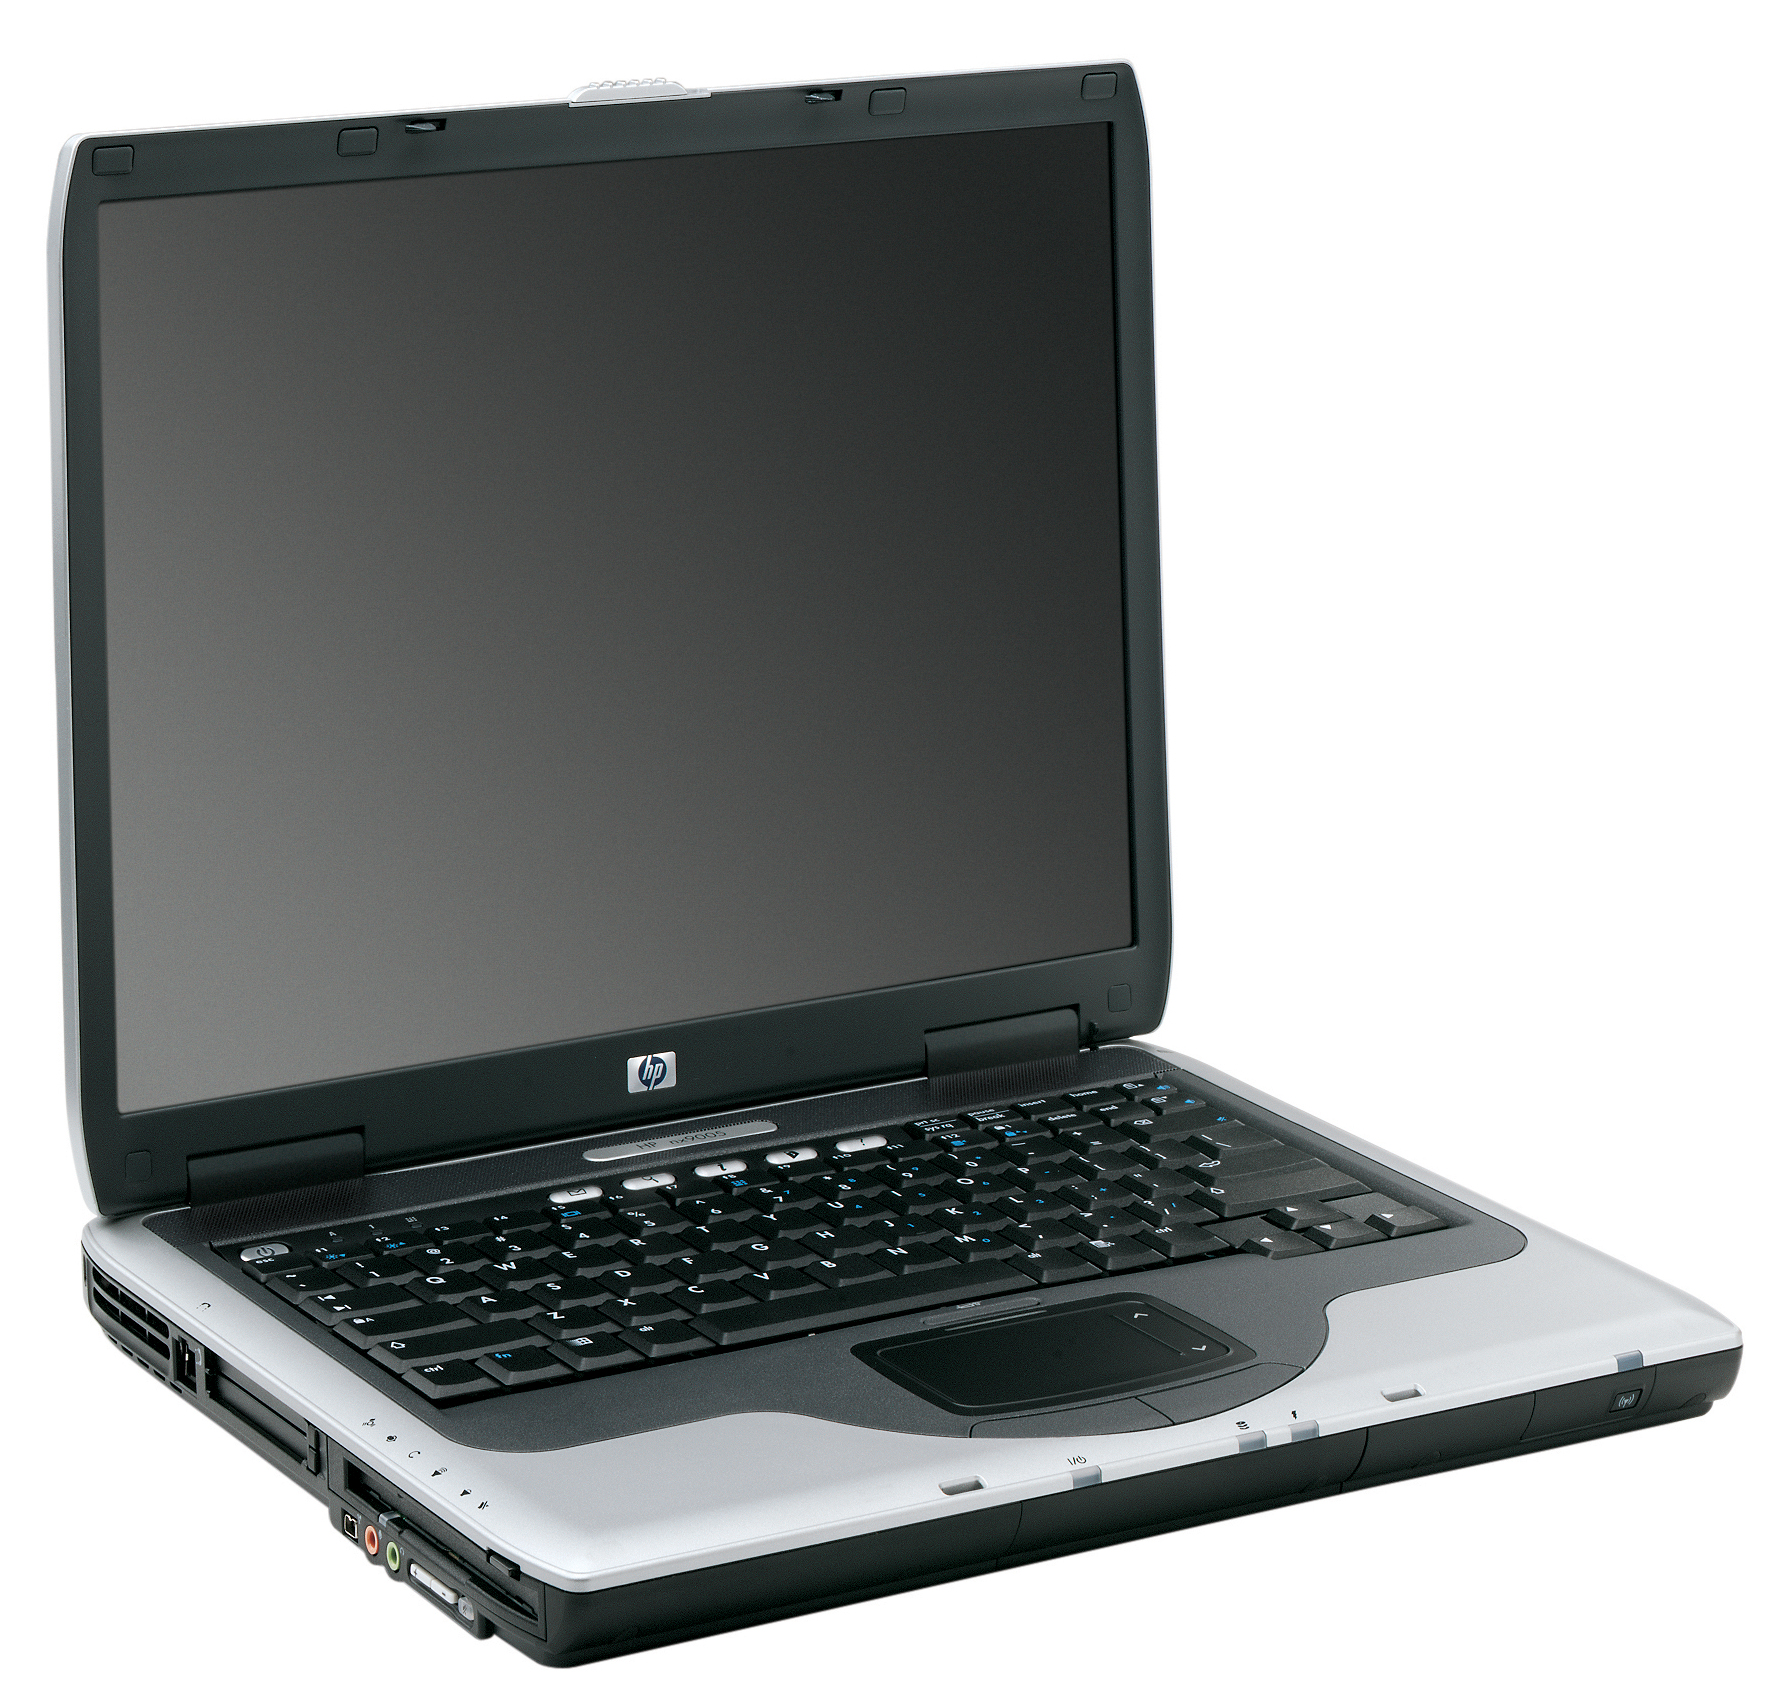 Xp drivers for compaq laptop windows 7